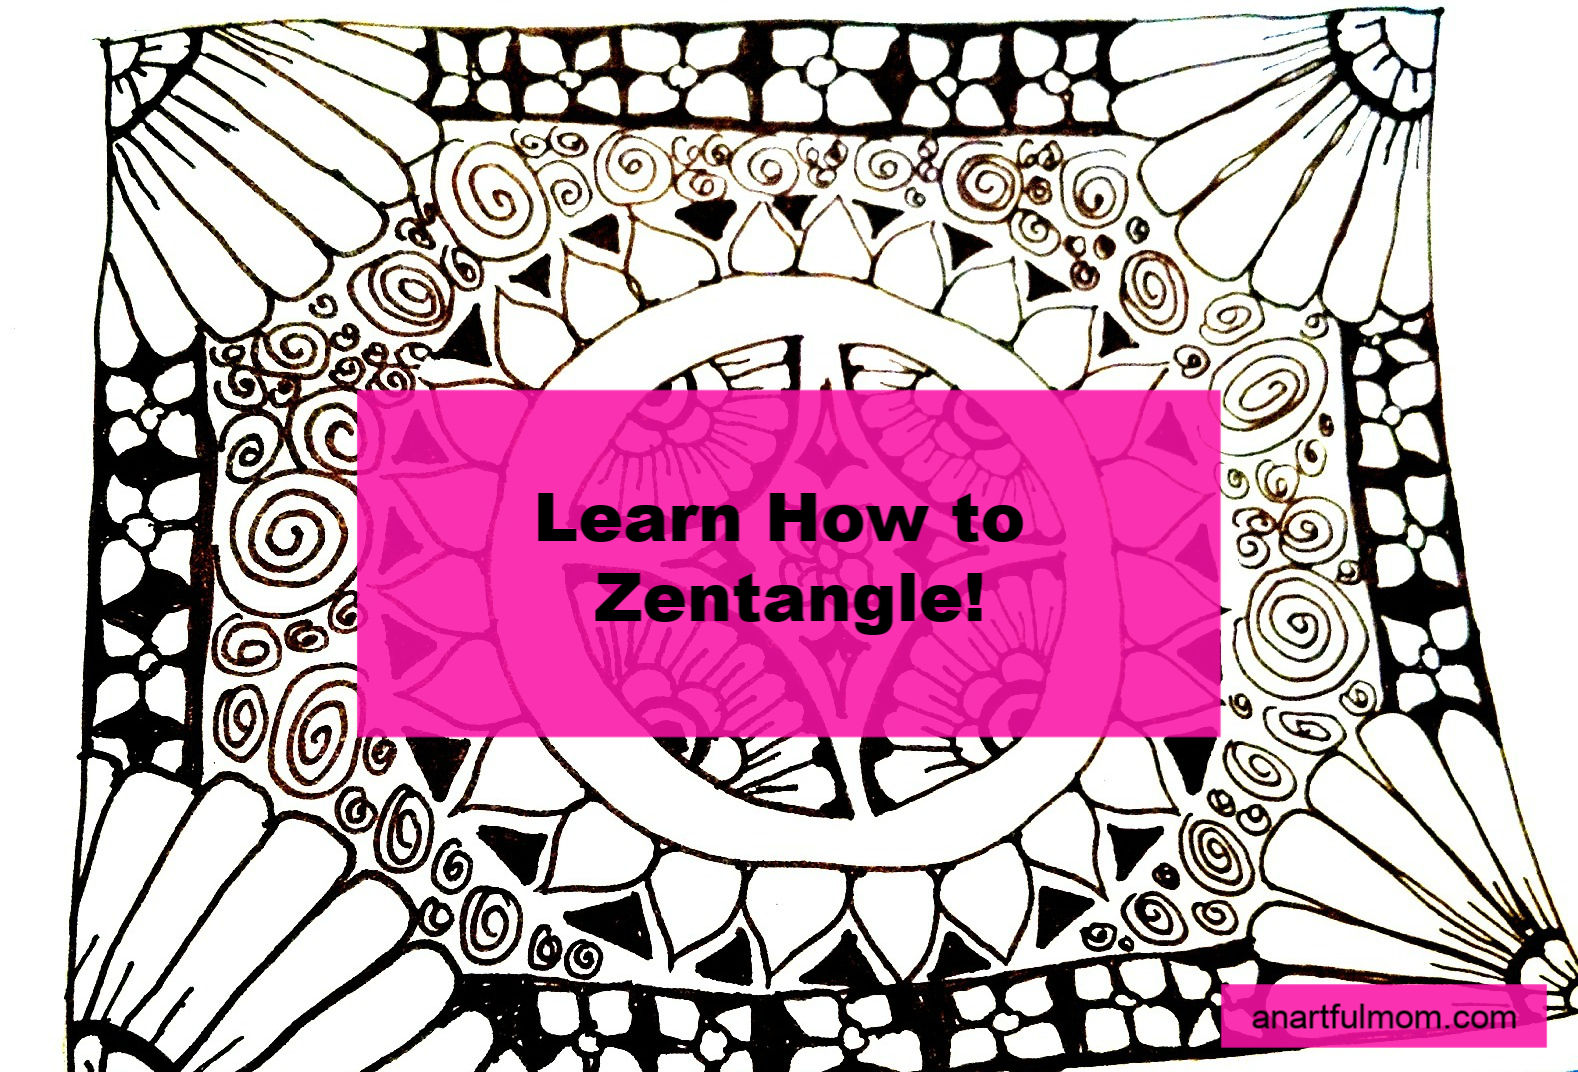 How to Zentangle for Doodlers, bullet journaling, and artists. #zentangle #doodling #bullet journal